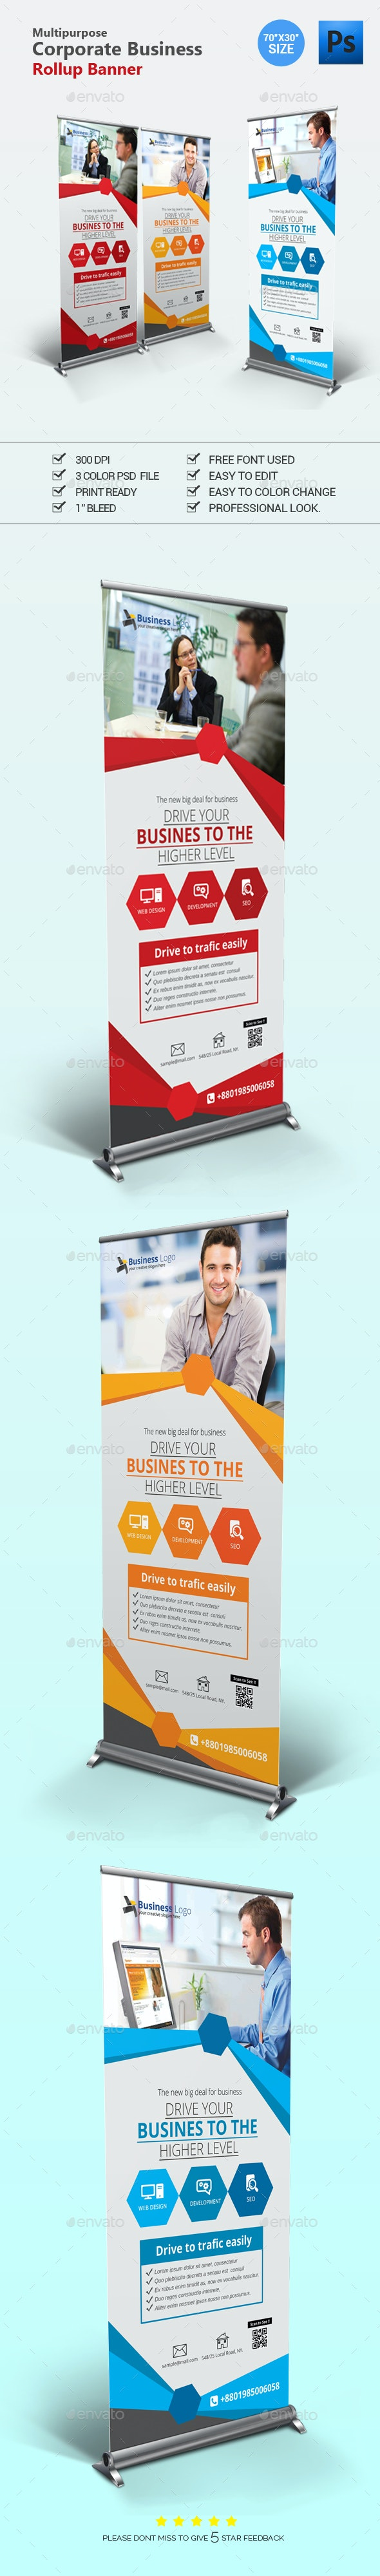 Rollup Banner Design - Signage Print Templates